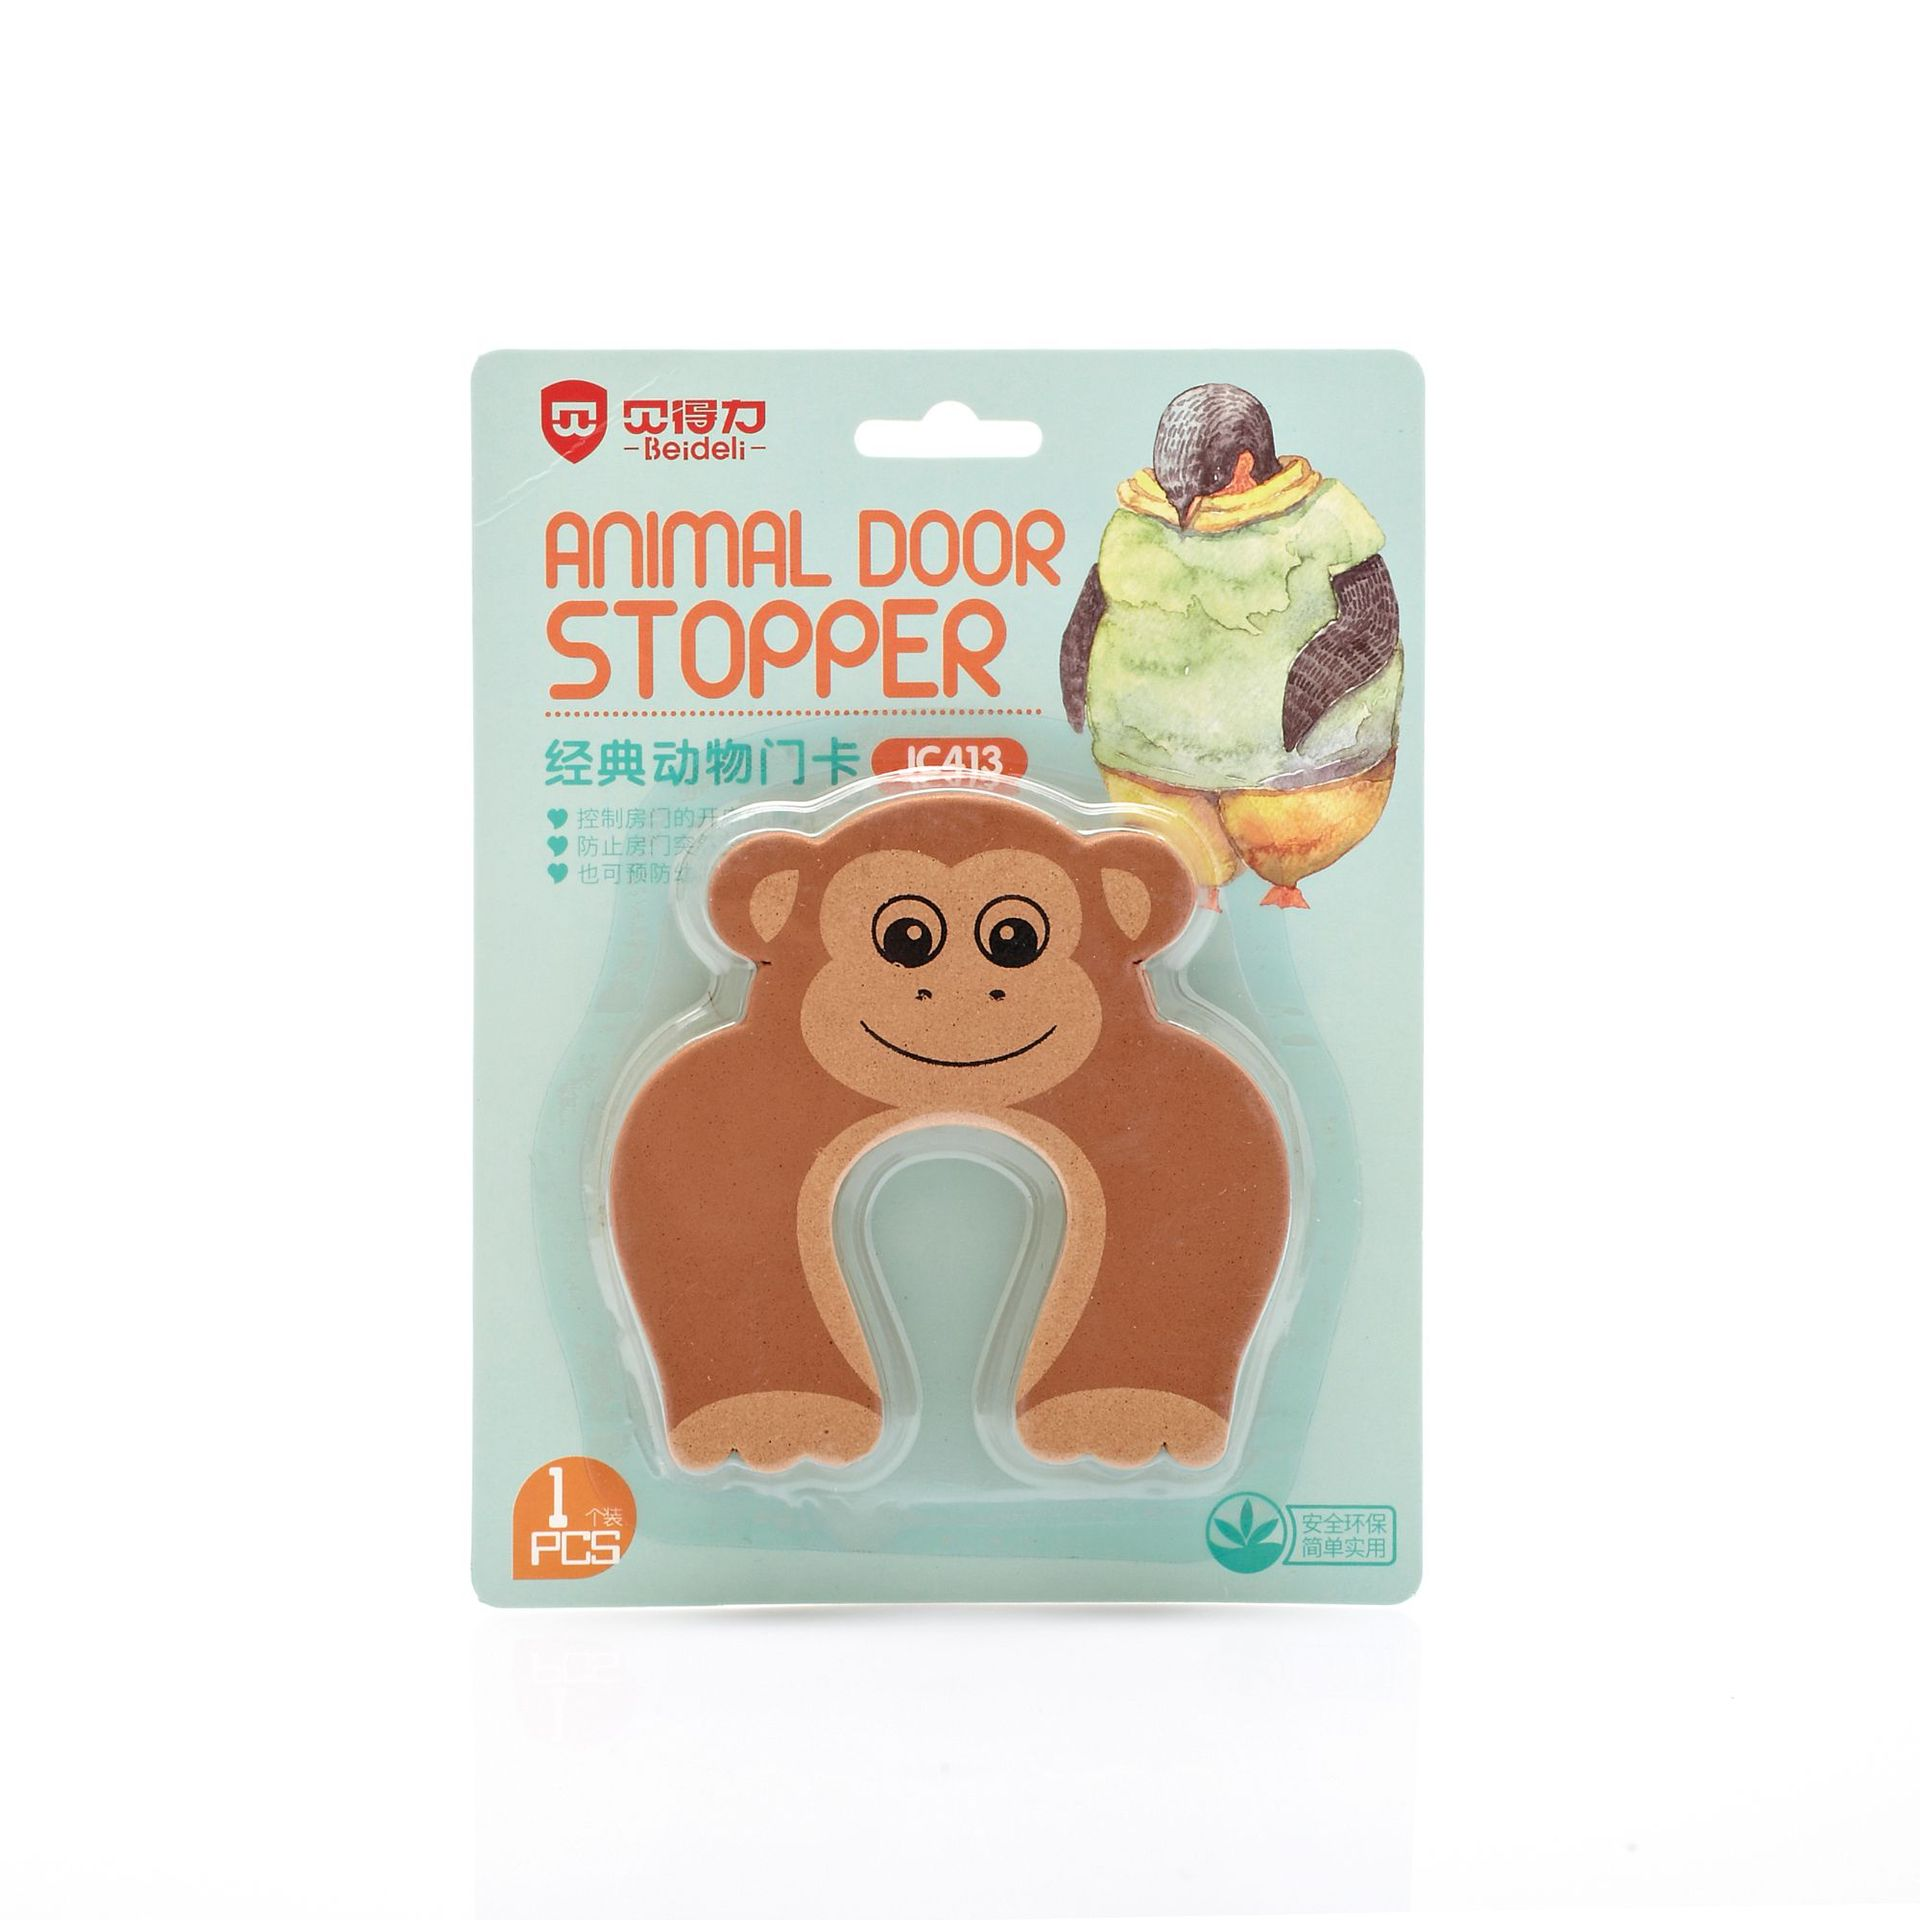 Bedsafe Children's Safety Products Baby EVA Animal Safety Door Cards